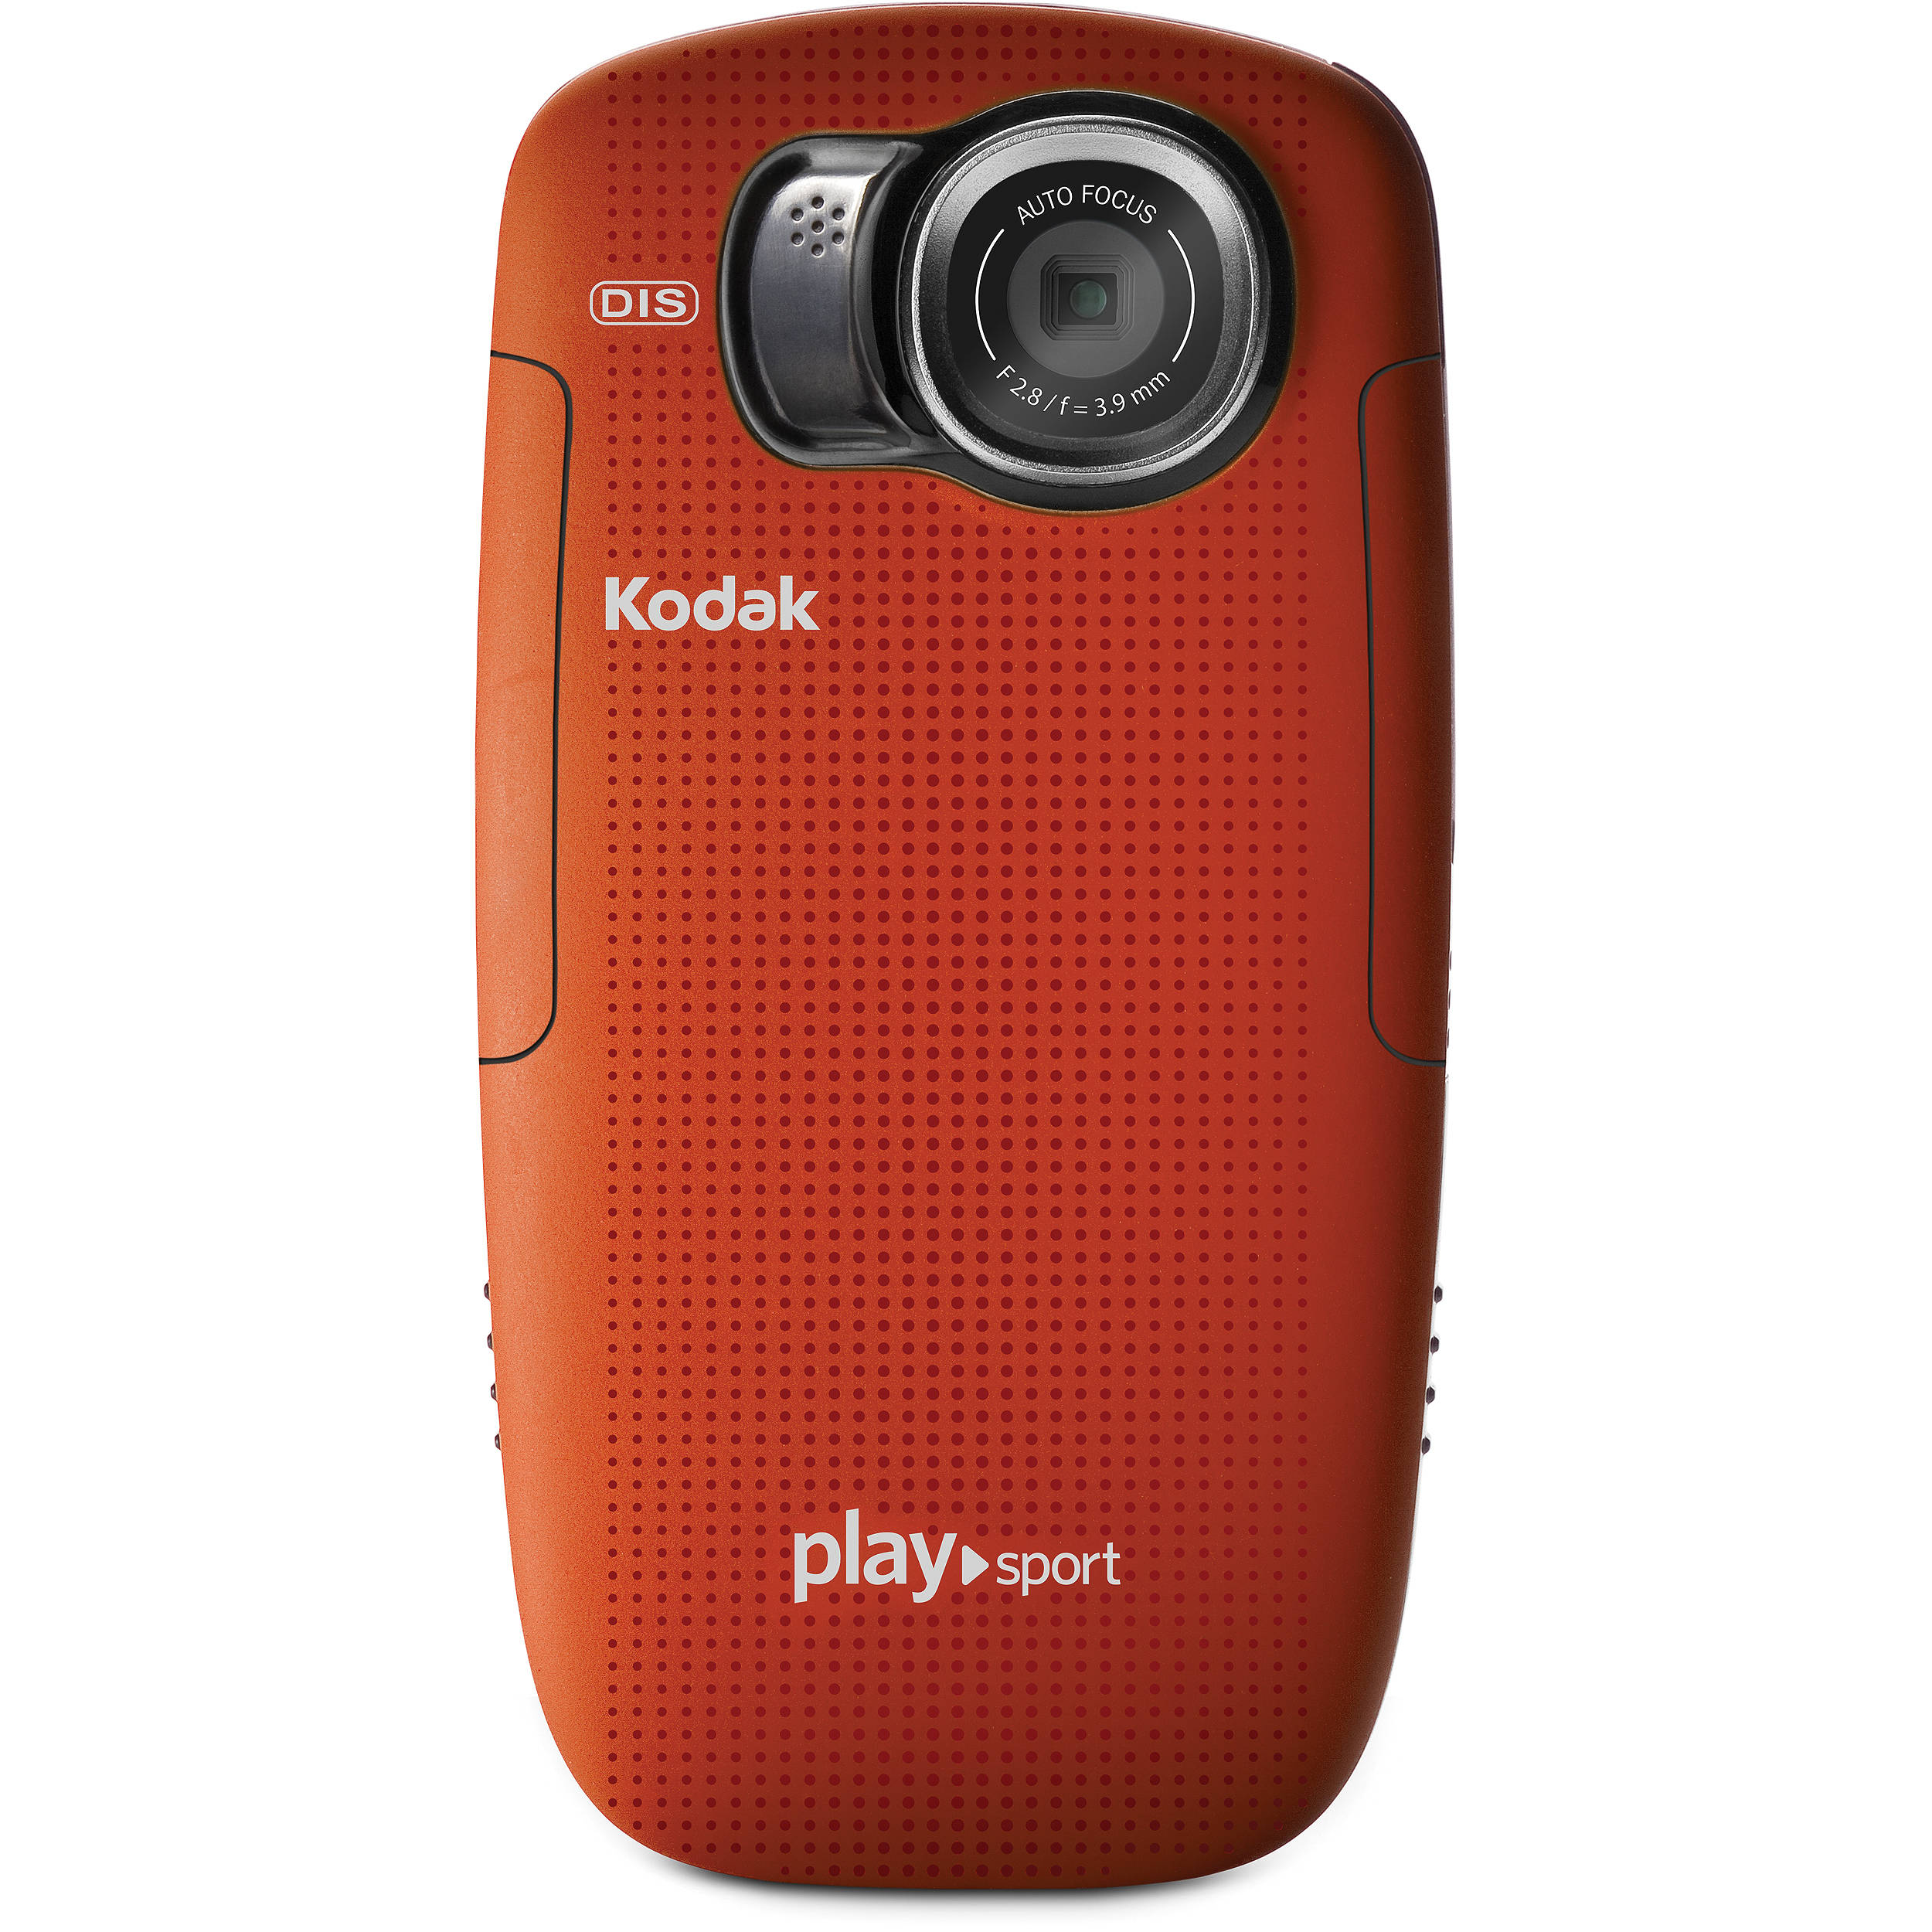 Kodak PLAYSPORT Zx5 Video Camera (Red) 8357428 B&H Photo Video